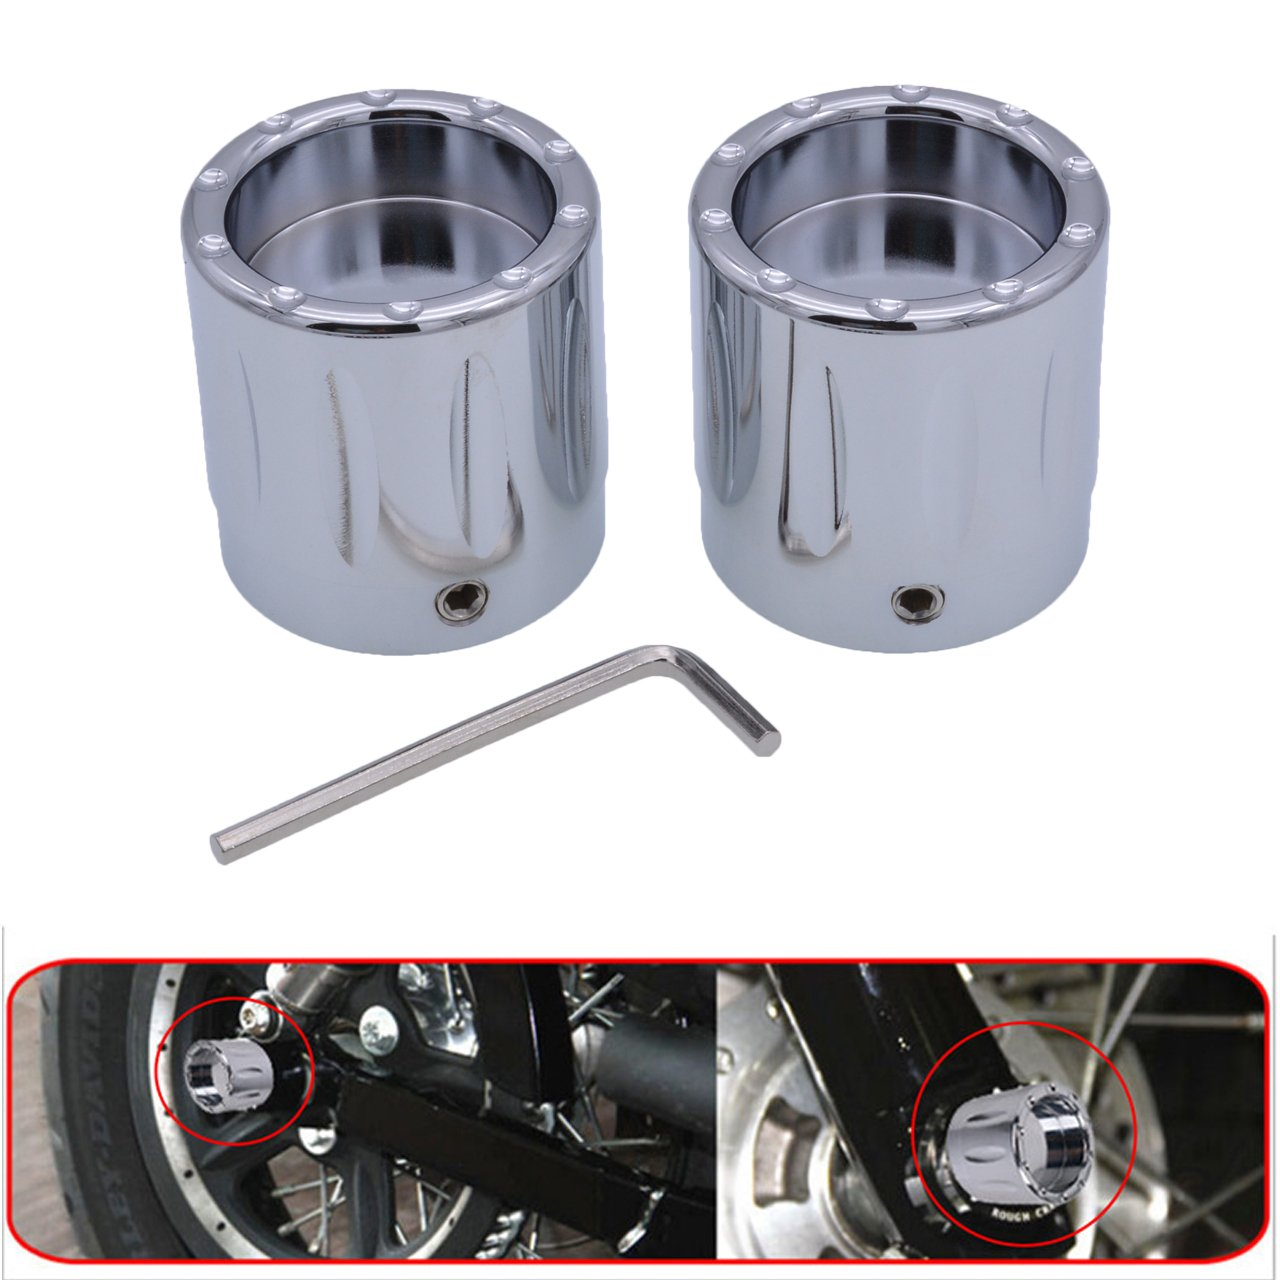 KaTur Black CNC Deep Edge Contrast Cut Front Axle Nut Cover for Harley Dyna V-Rod Touring Sportster XL883 XL1200 - Set